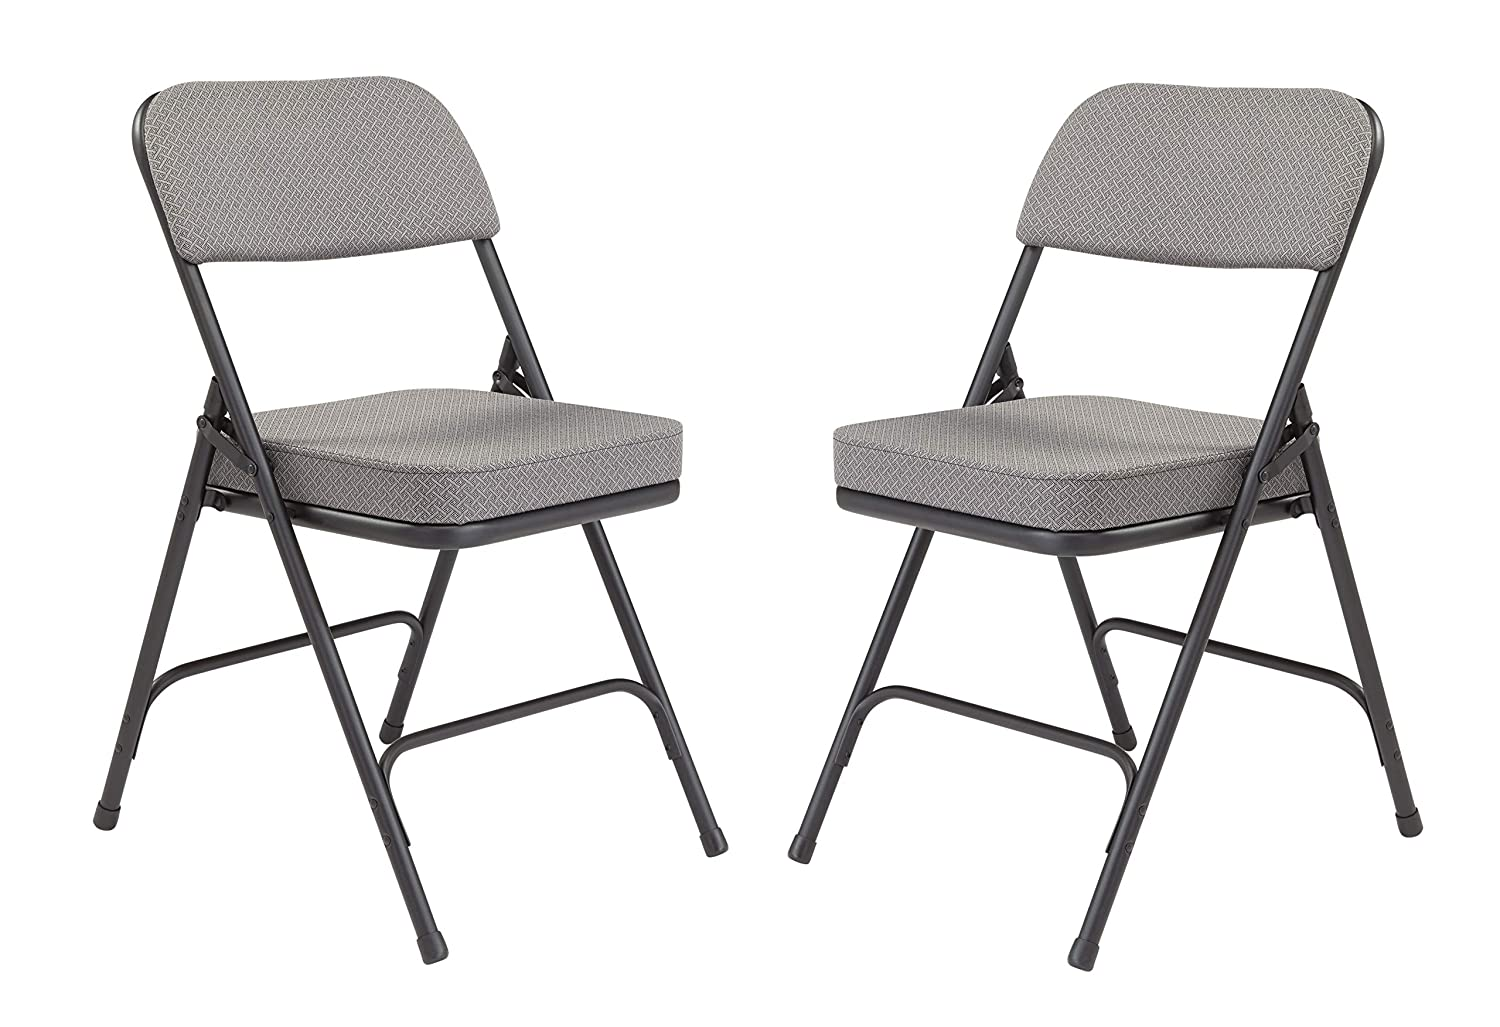 National Public Seating 3200 Series Steel Frame Upholstered Premium Fabric Seat and Back Folding Chair with Double Brace, 300-Pound Capacity, Regal Blue/Gray, Carton of 2 3215